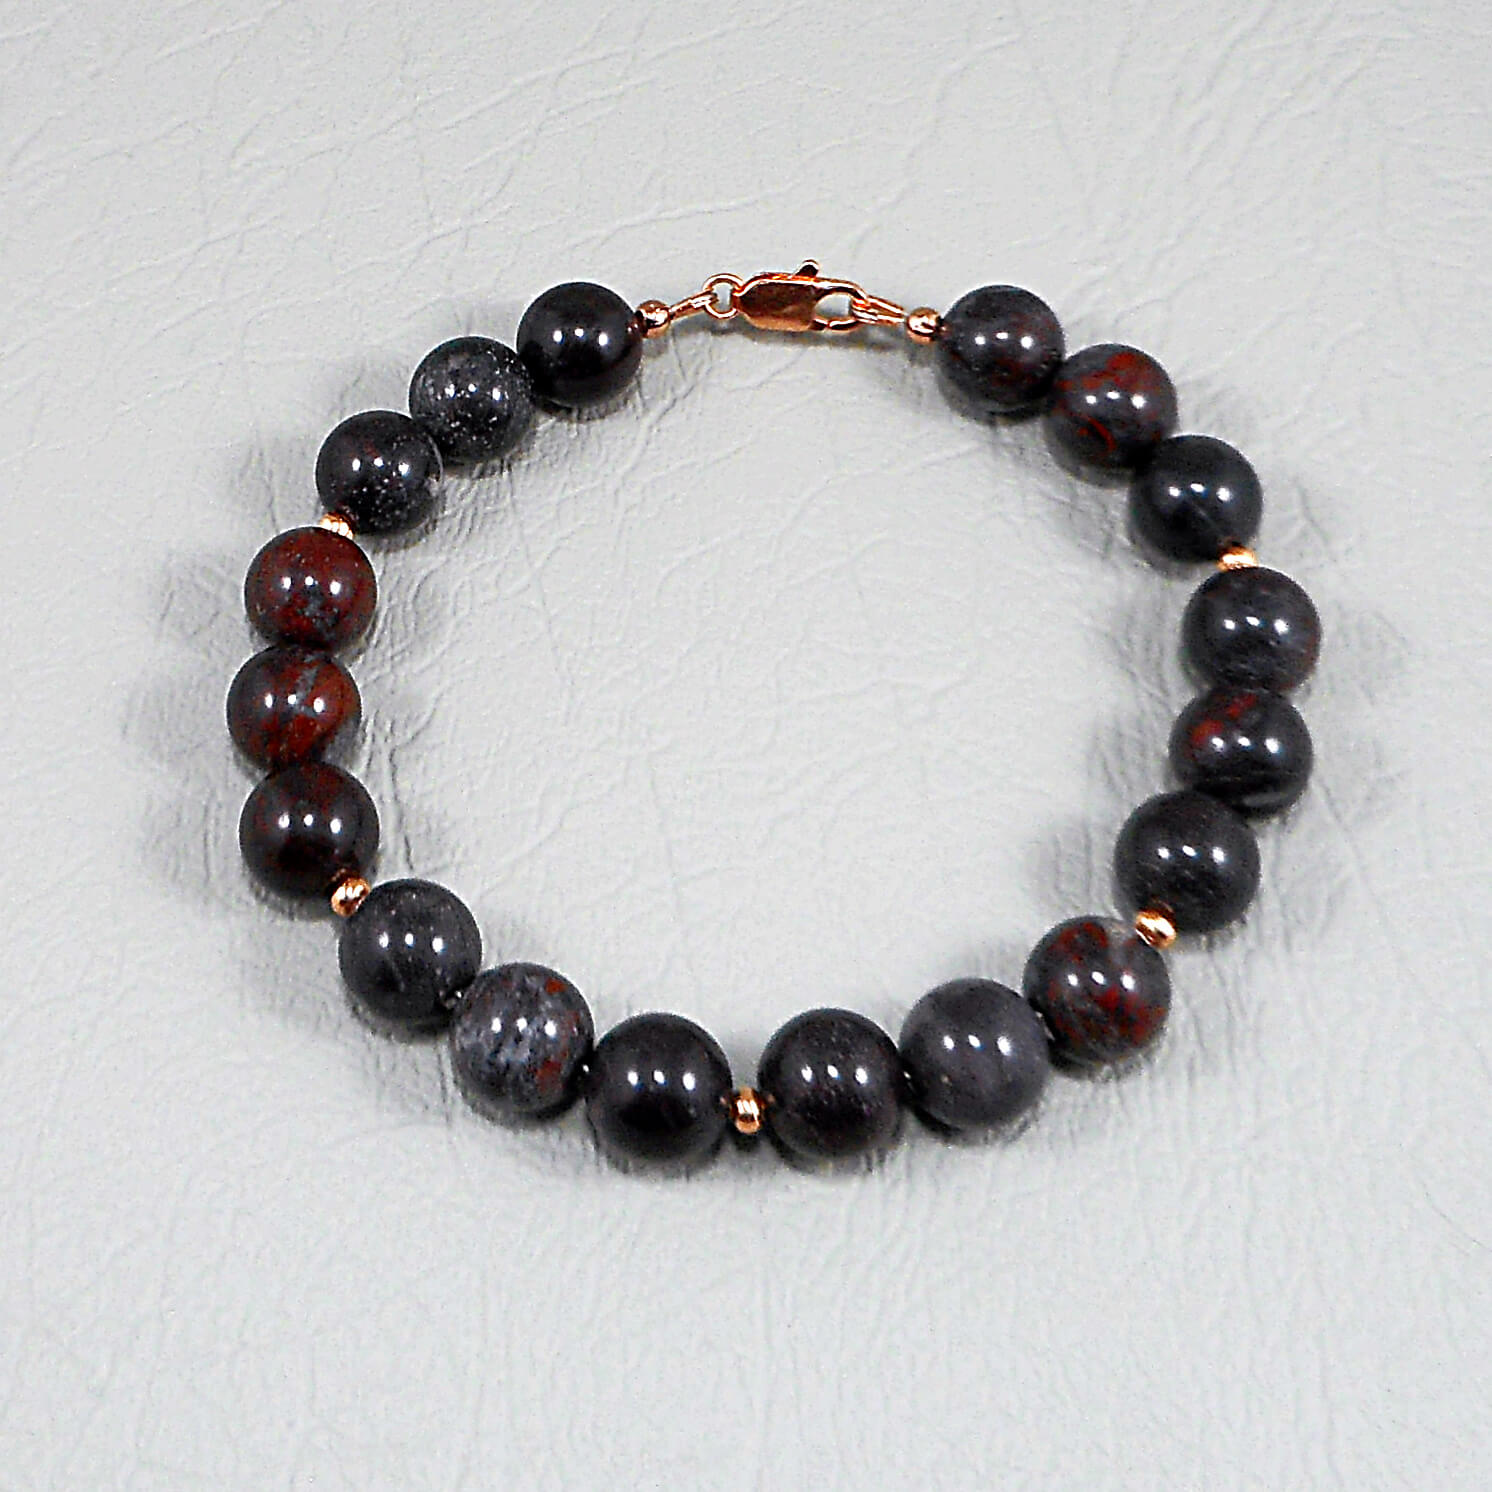 Copper spacers add contrast to the Mustang Jasper with its dark, smoky base and flashes of red. The copper is repeated in the clasp and findings